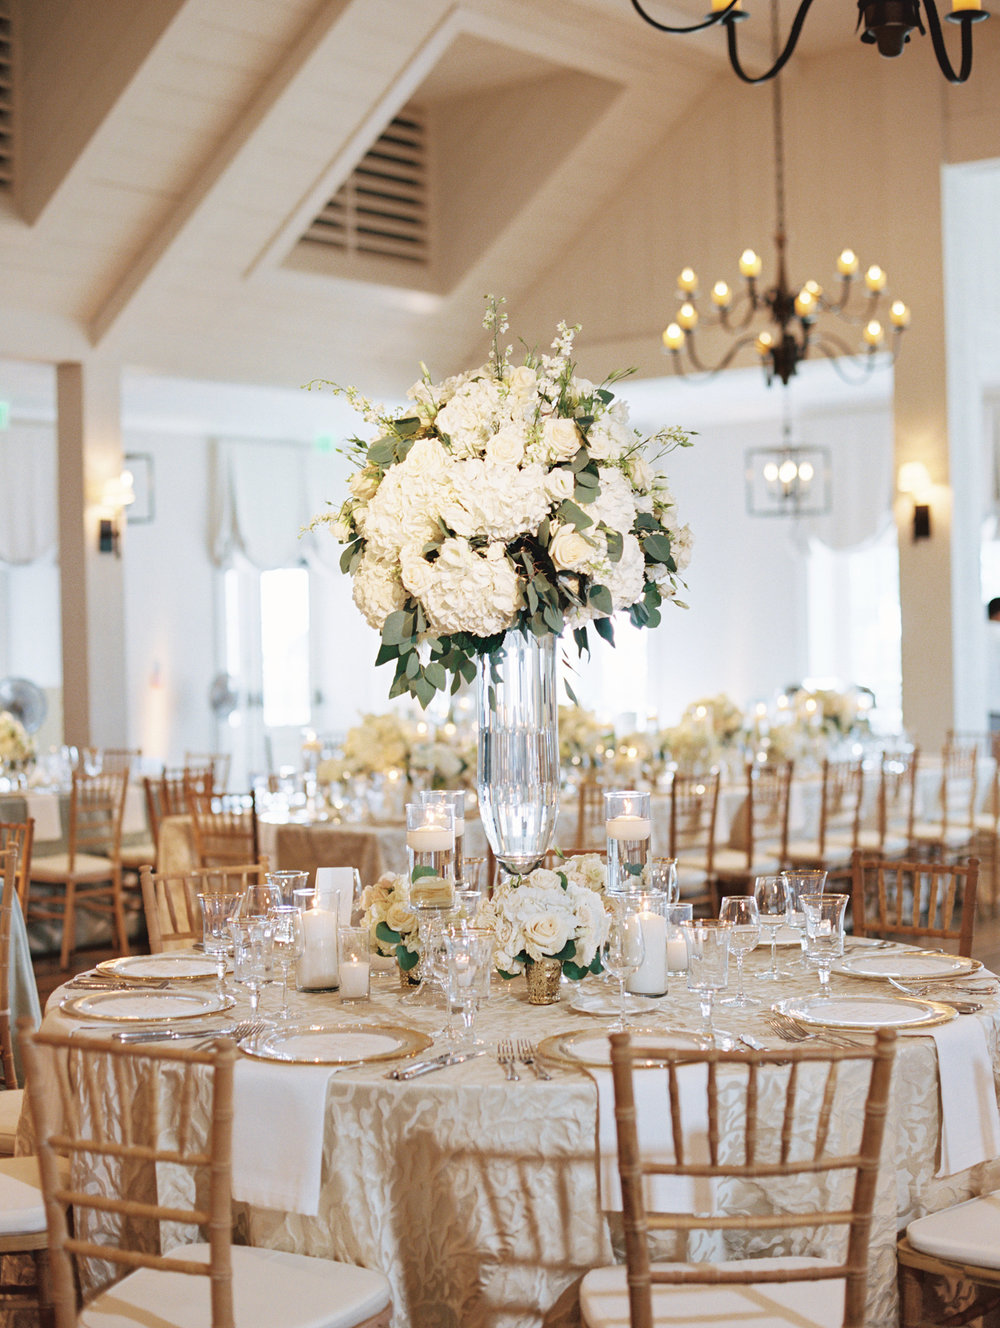 Reception Details - Kiawah Island, South Carolina - Fall Wedding - Julian Leaver Events